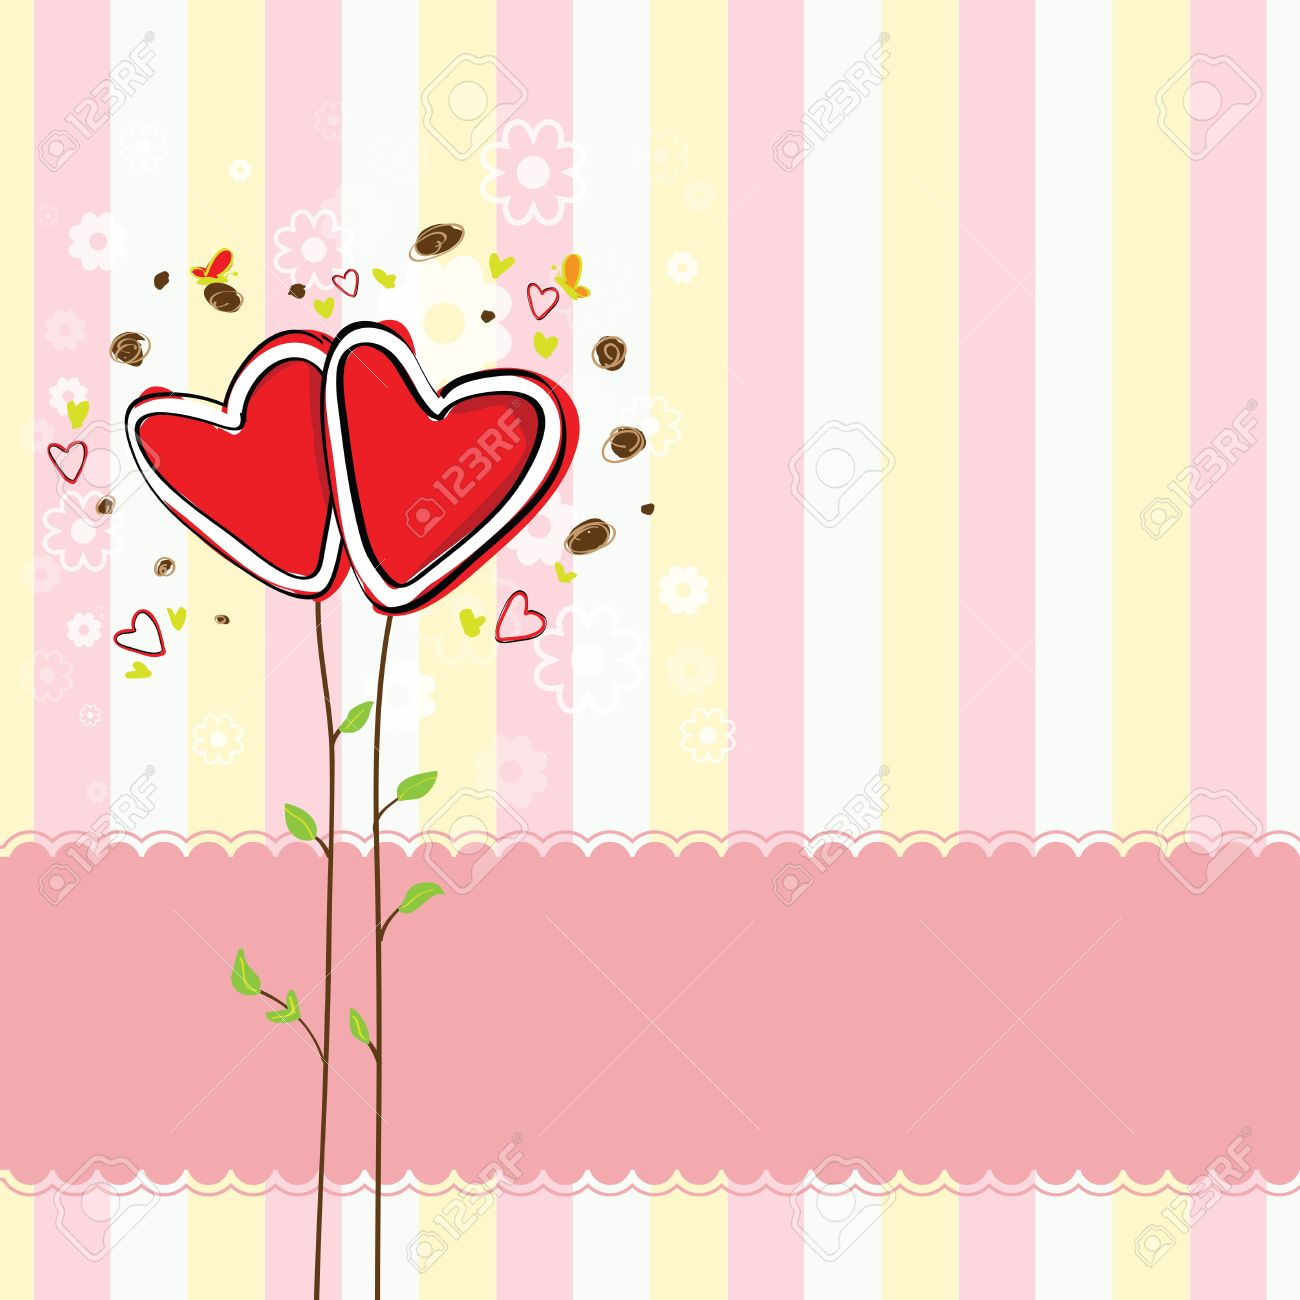 Cute heart tree and sweet background royalty free cliparts vectors cute heart tree and sweet background stock vector 19023118 voltagebd Choice Image